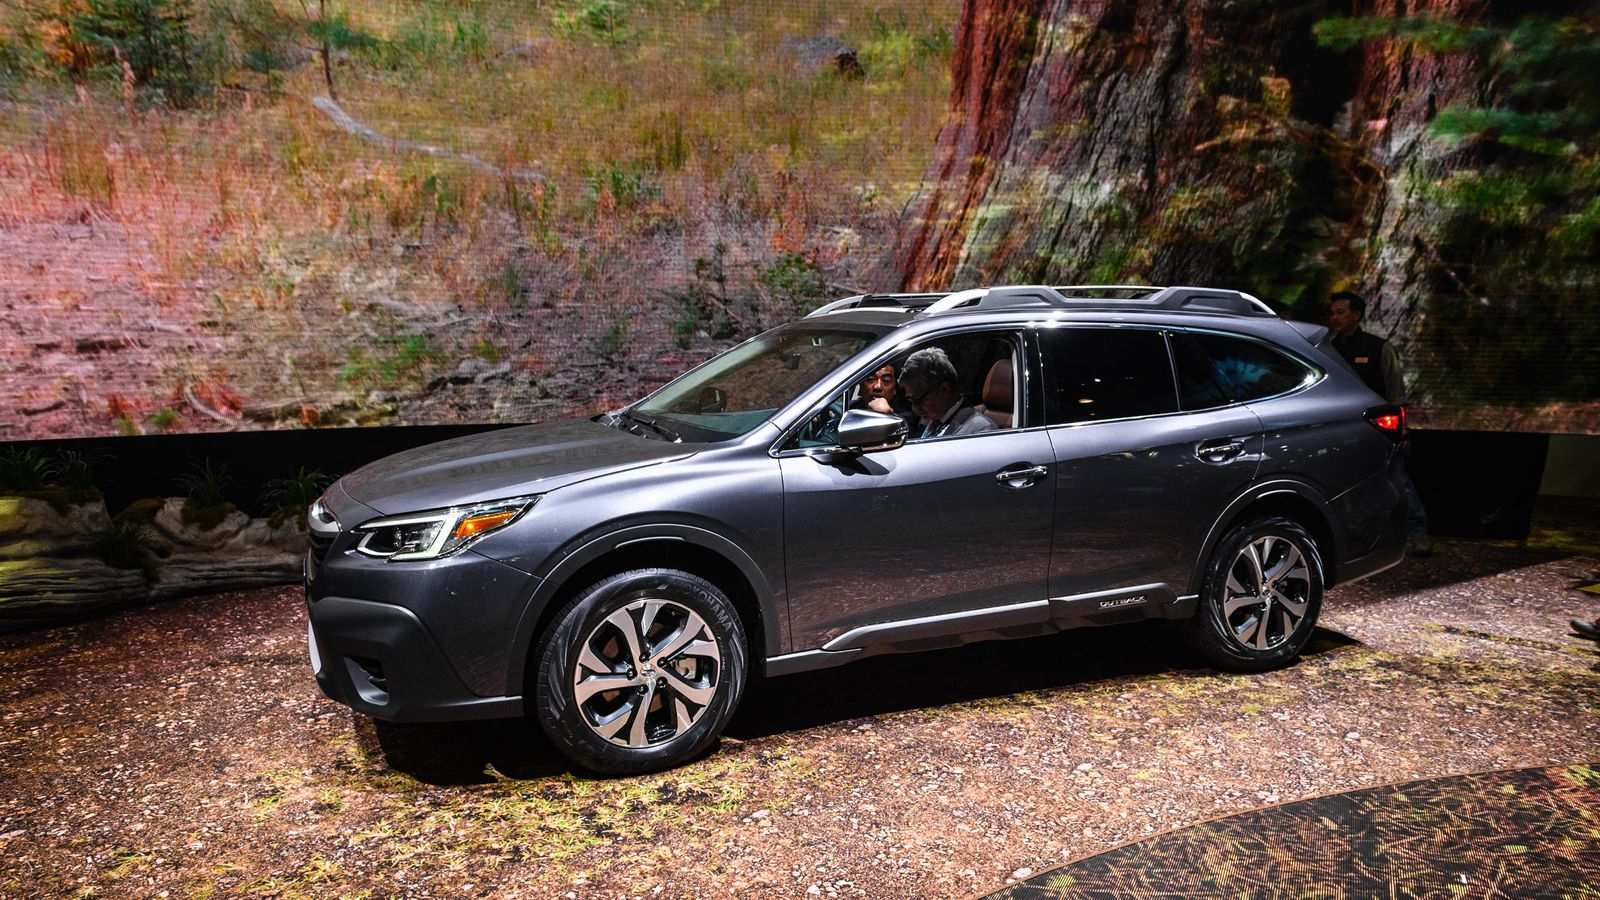 25 New 2020 Subaru Outback Availability Engine by 2020 Subaru Outback Availability